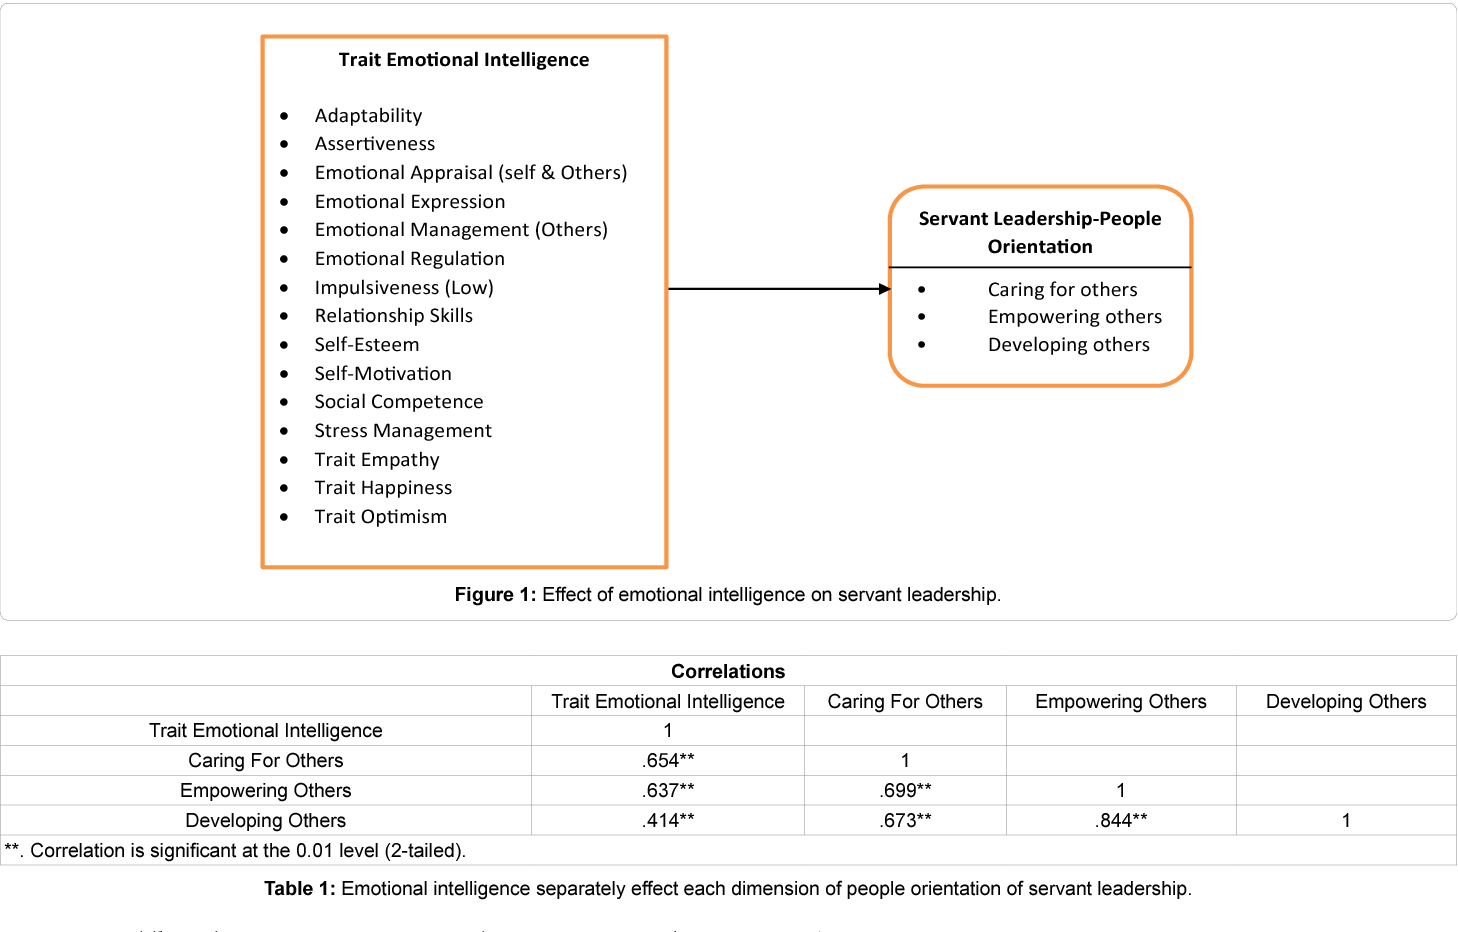 Table 1 from Impact of Emotional Intelligence on People